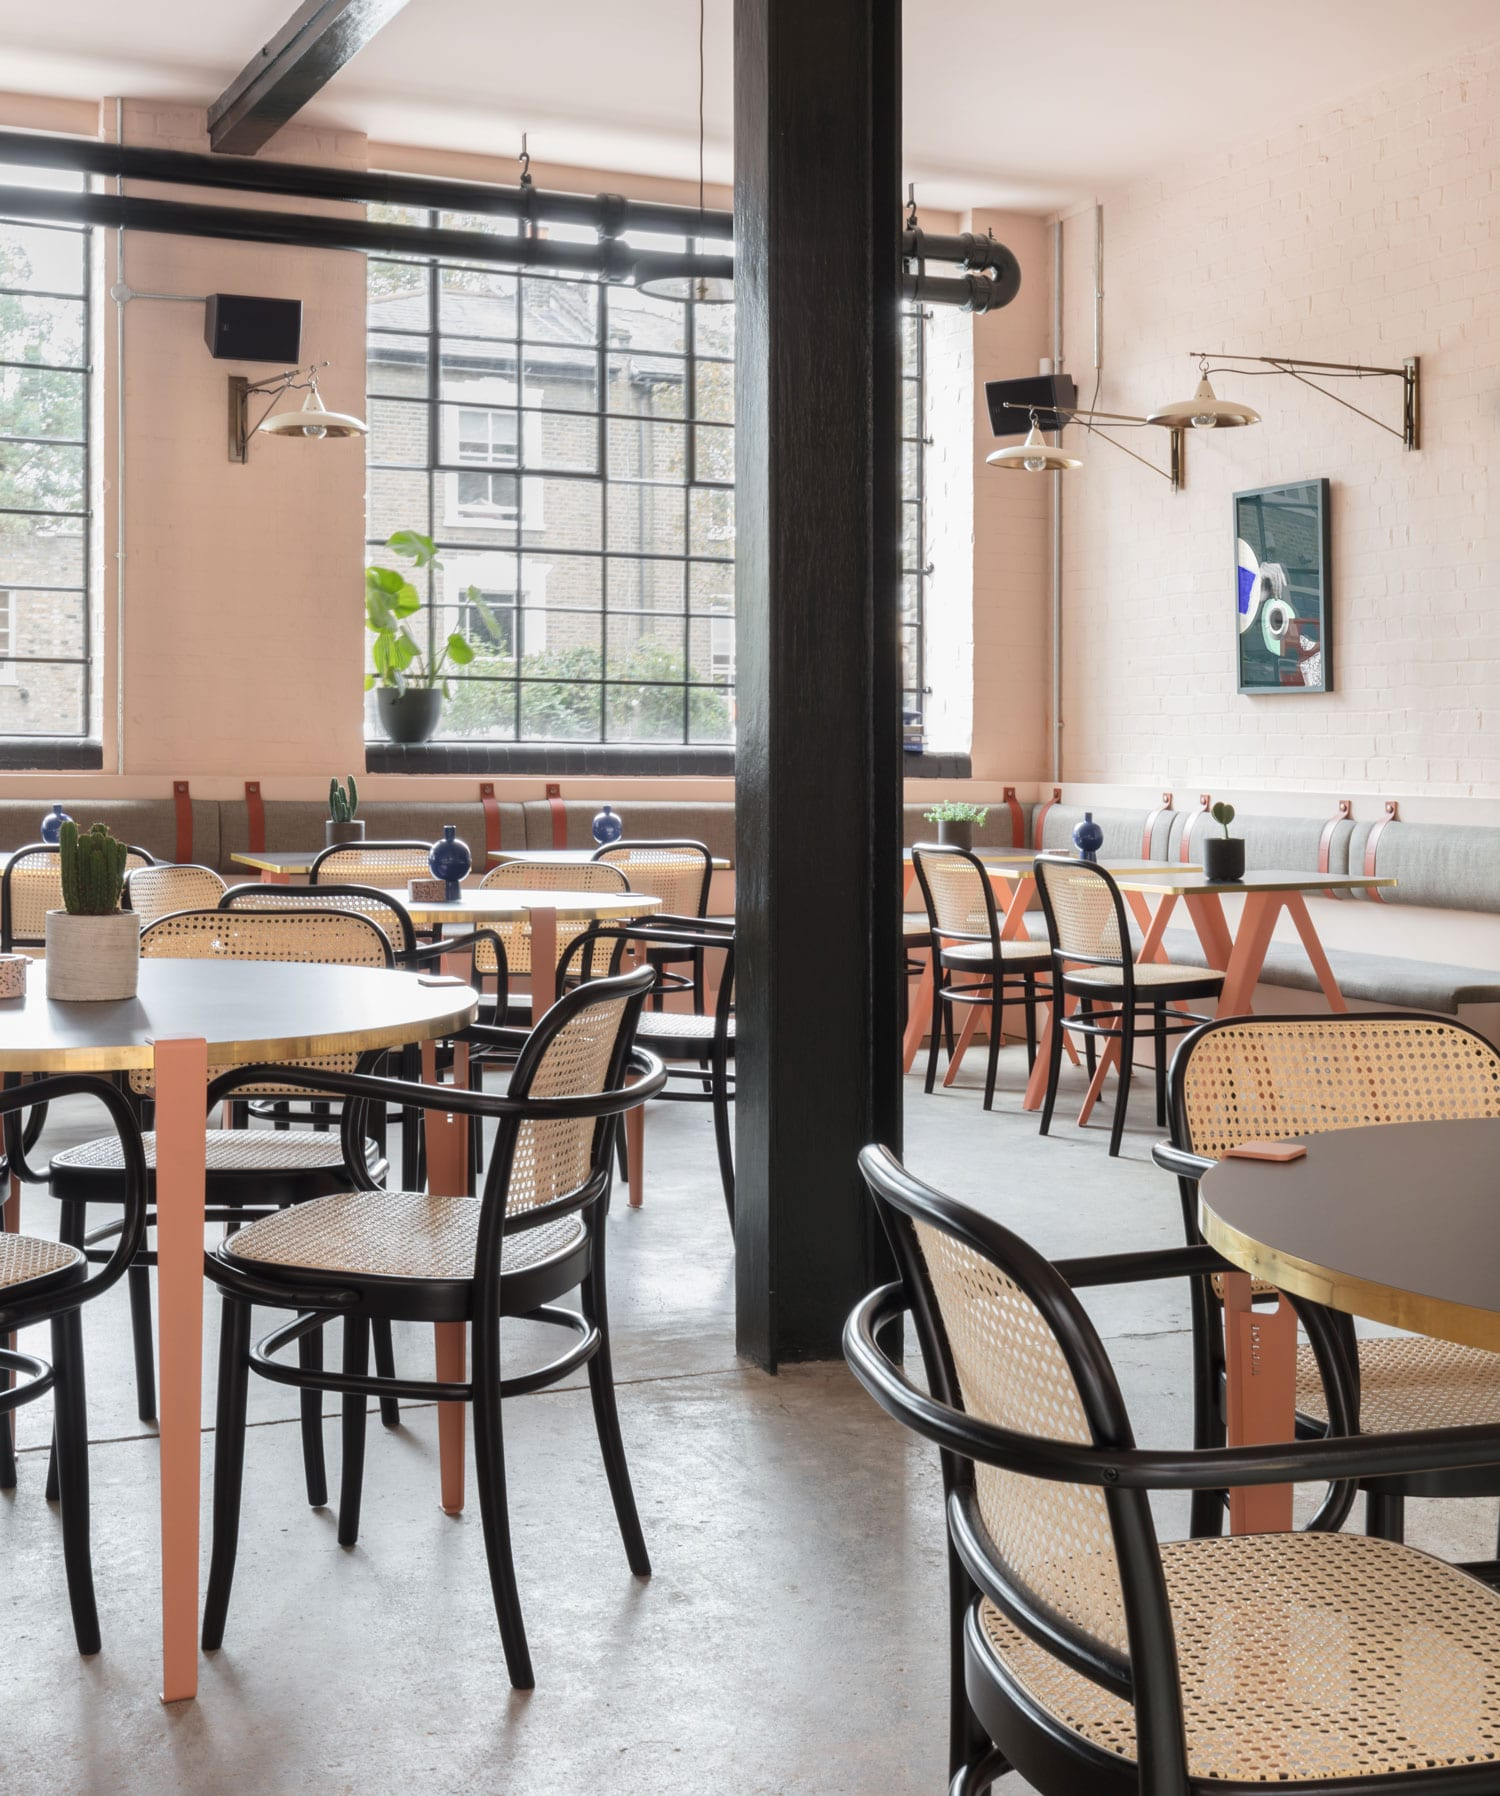 De Beauvoir Block Creative Workspaces in Hackney, London by Sella Concept   Yellowtrace